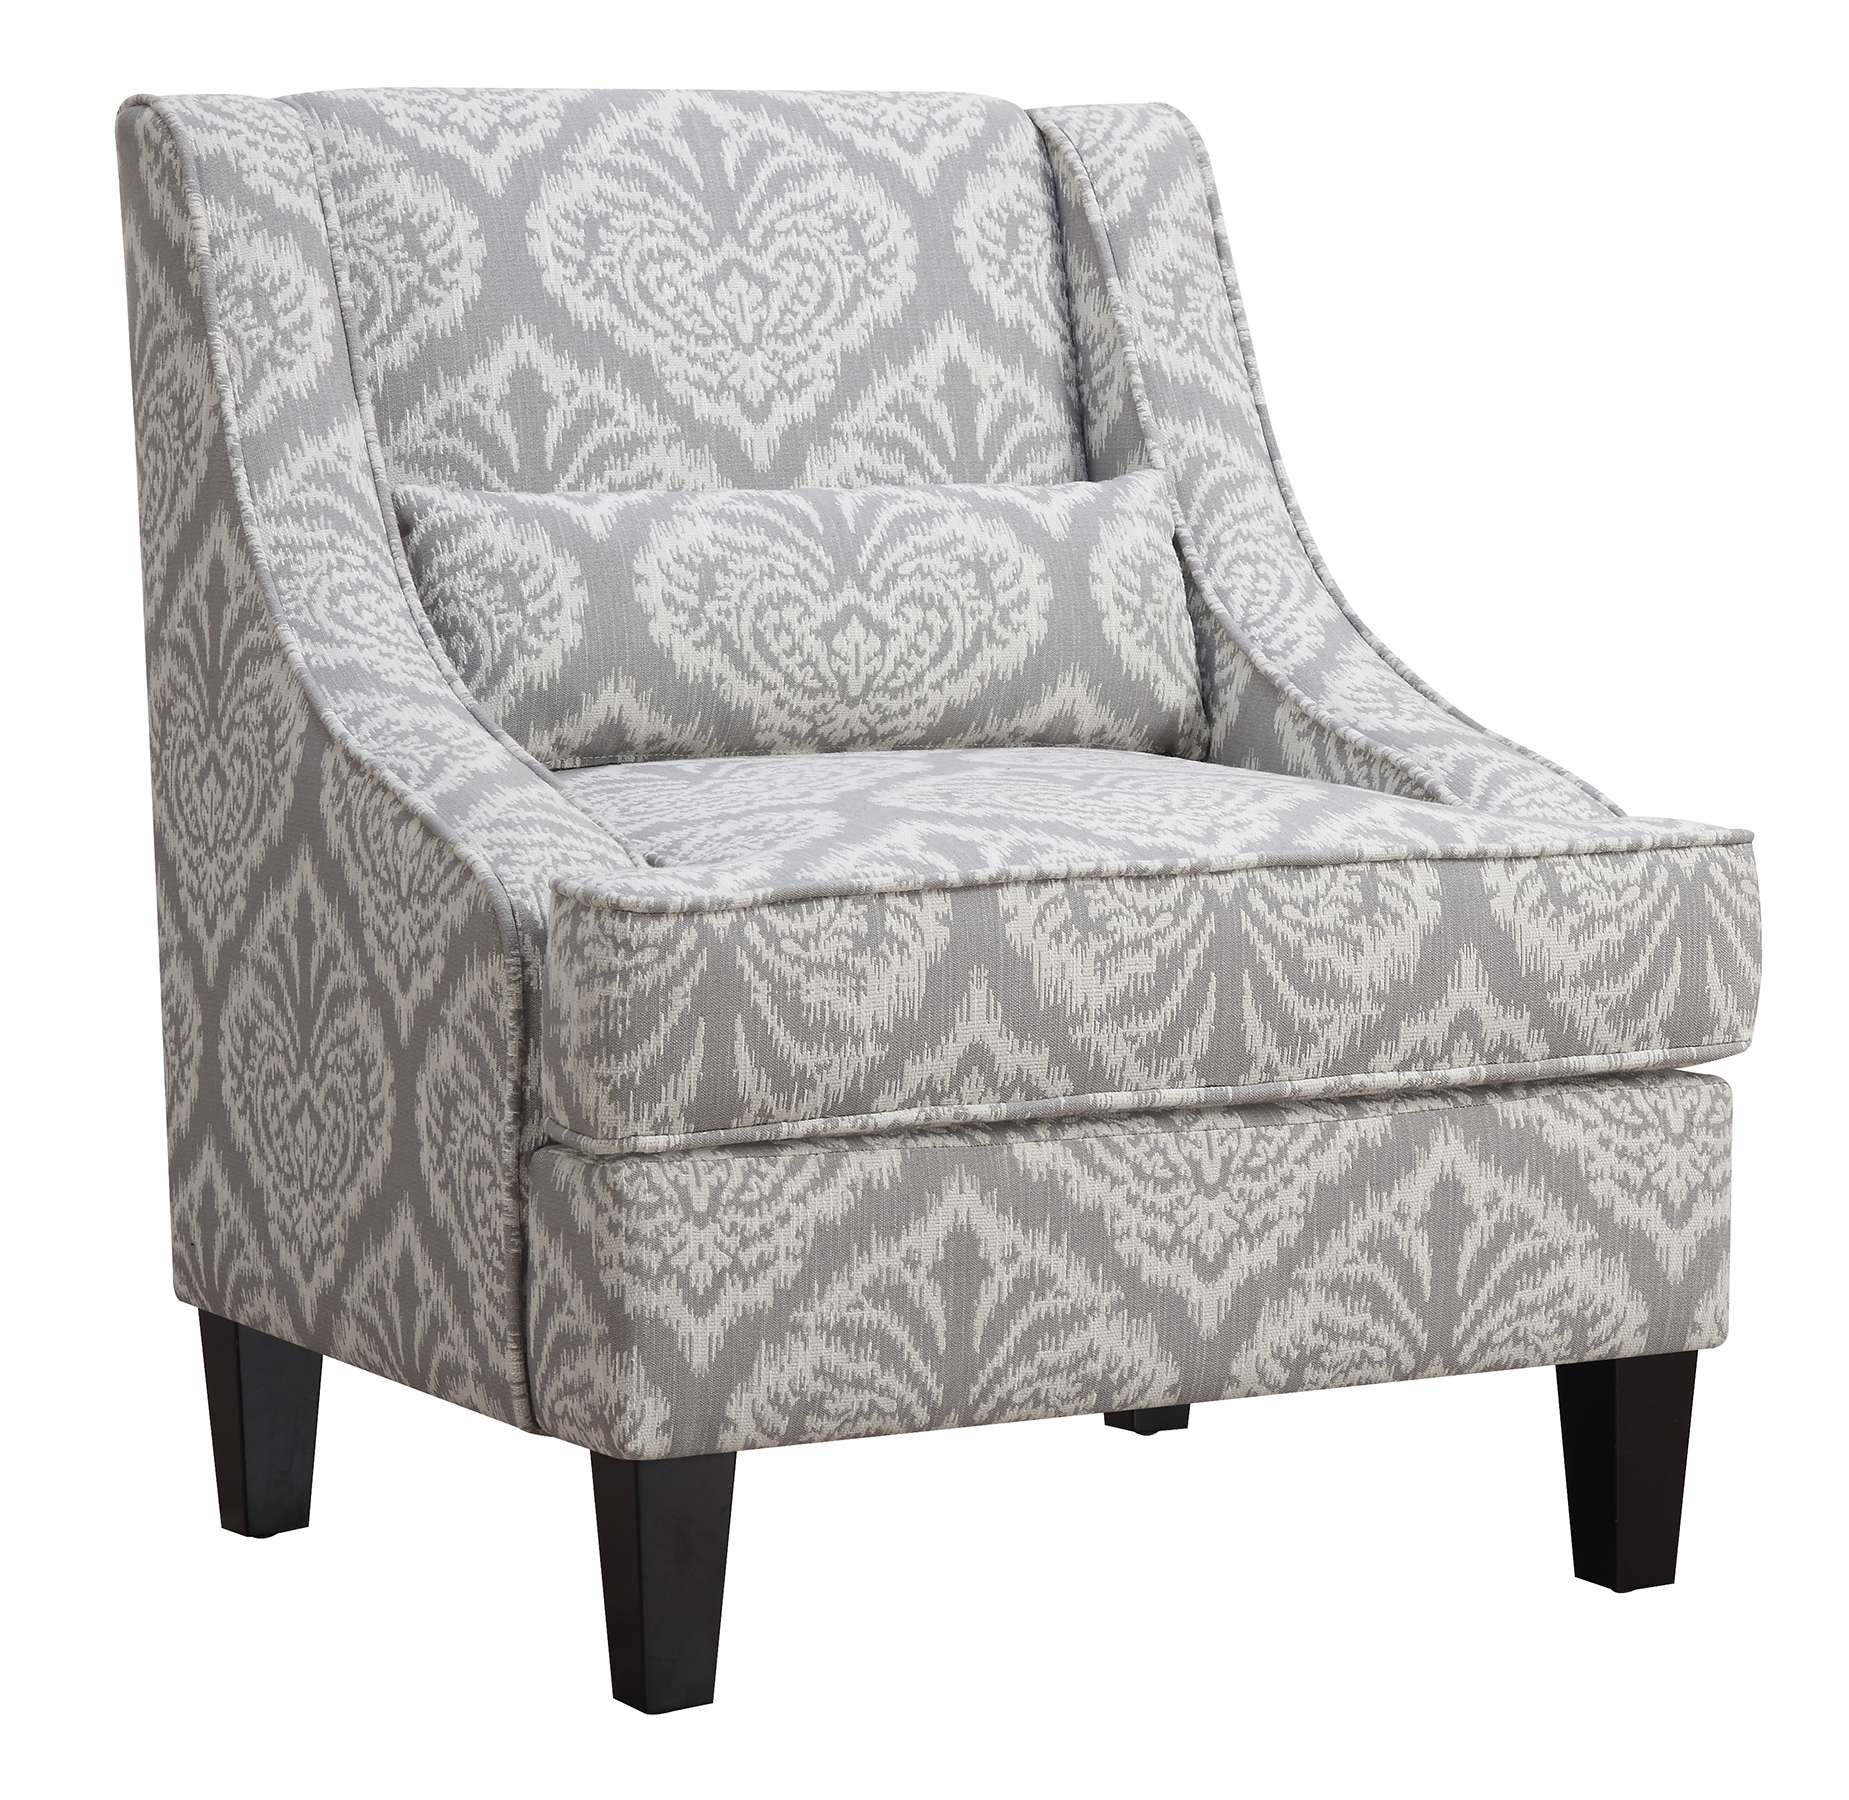 Gray and White Jacquered Accent Chair